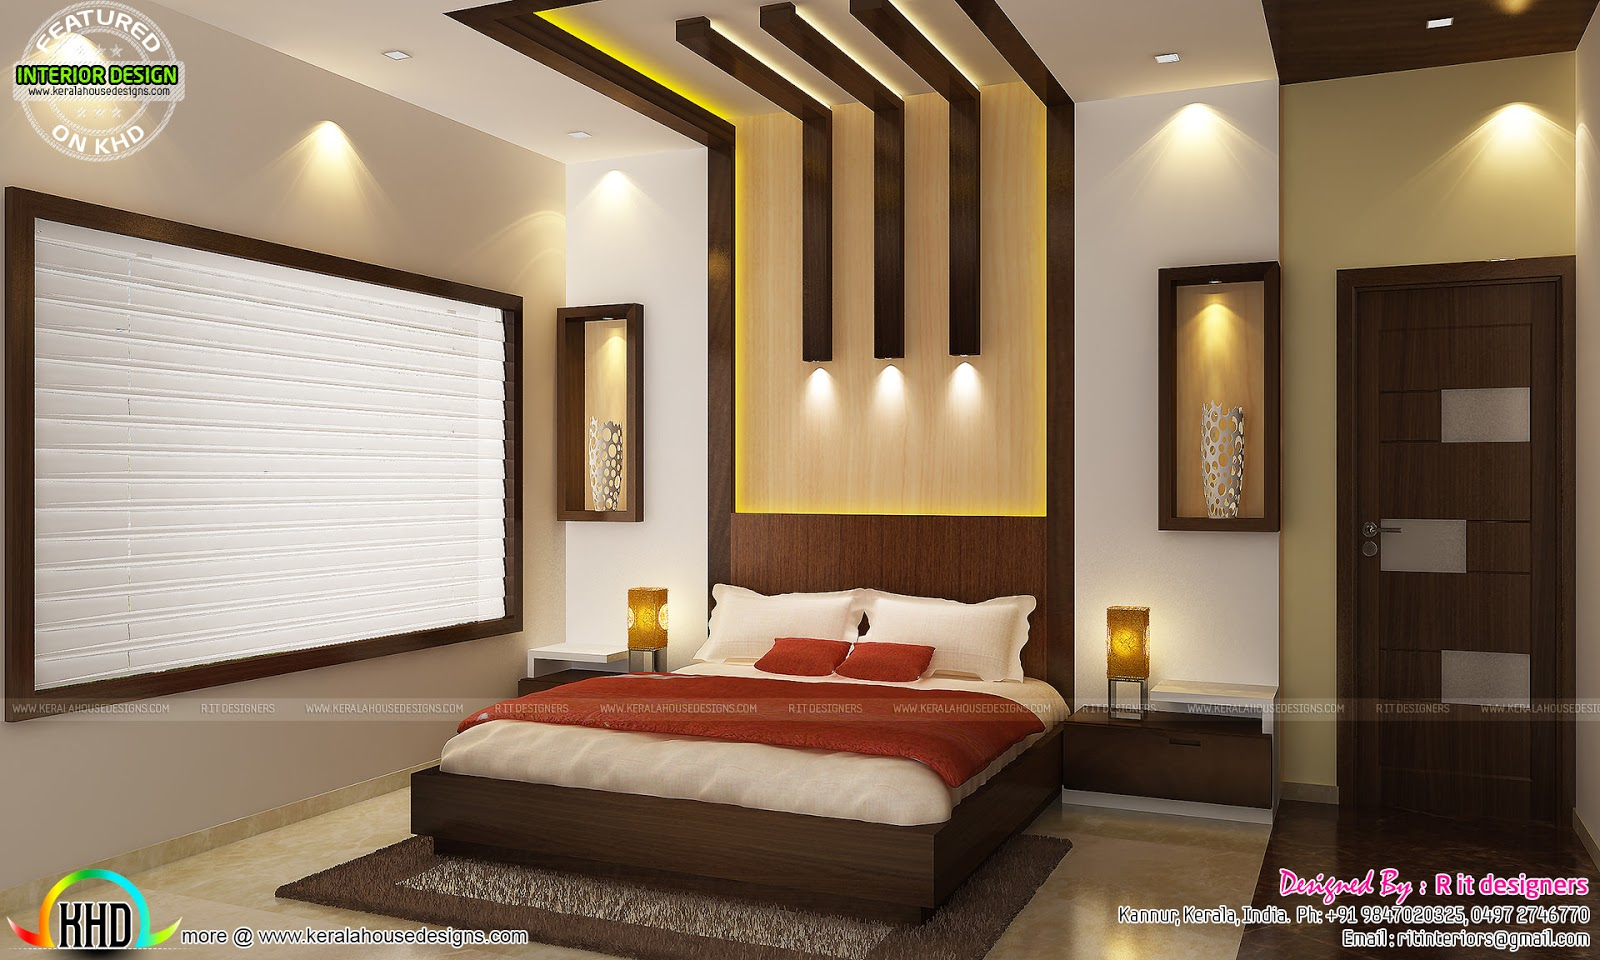 Kitchen living bedroom dining interior decor kerala for Interior design images bedroom